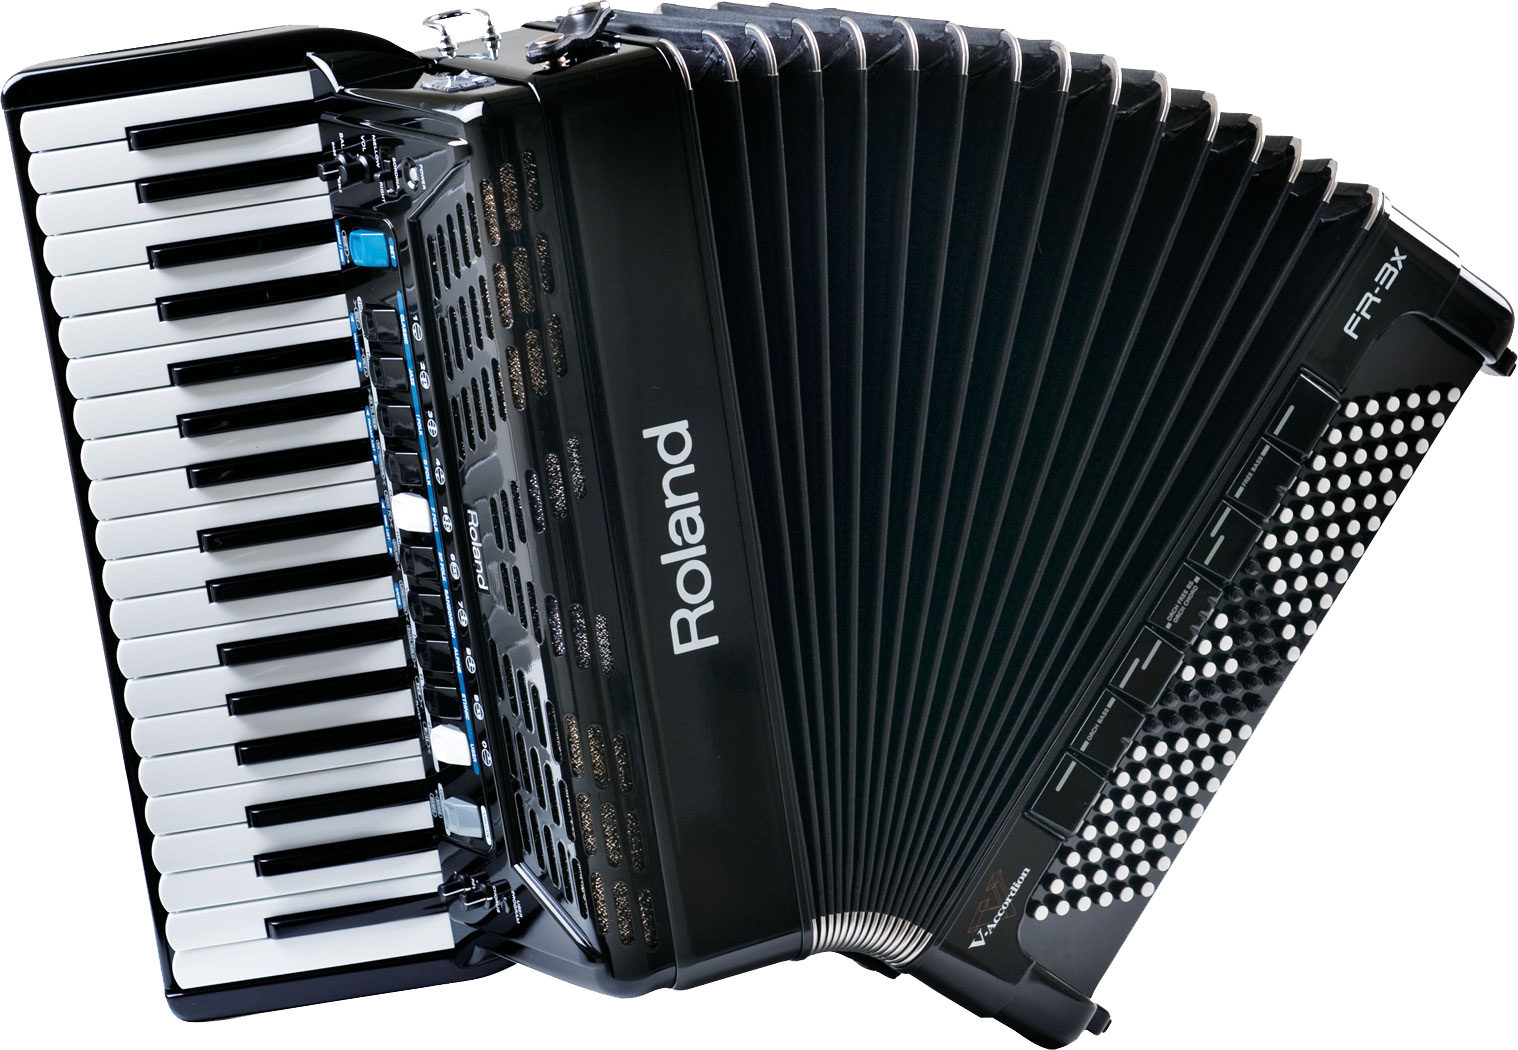 Accordion Transparent Png - Accordion, Transparent background PNG HD thumbnail